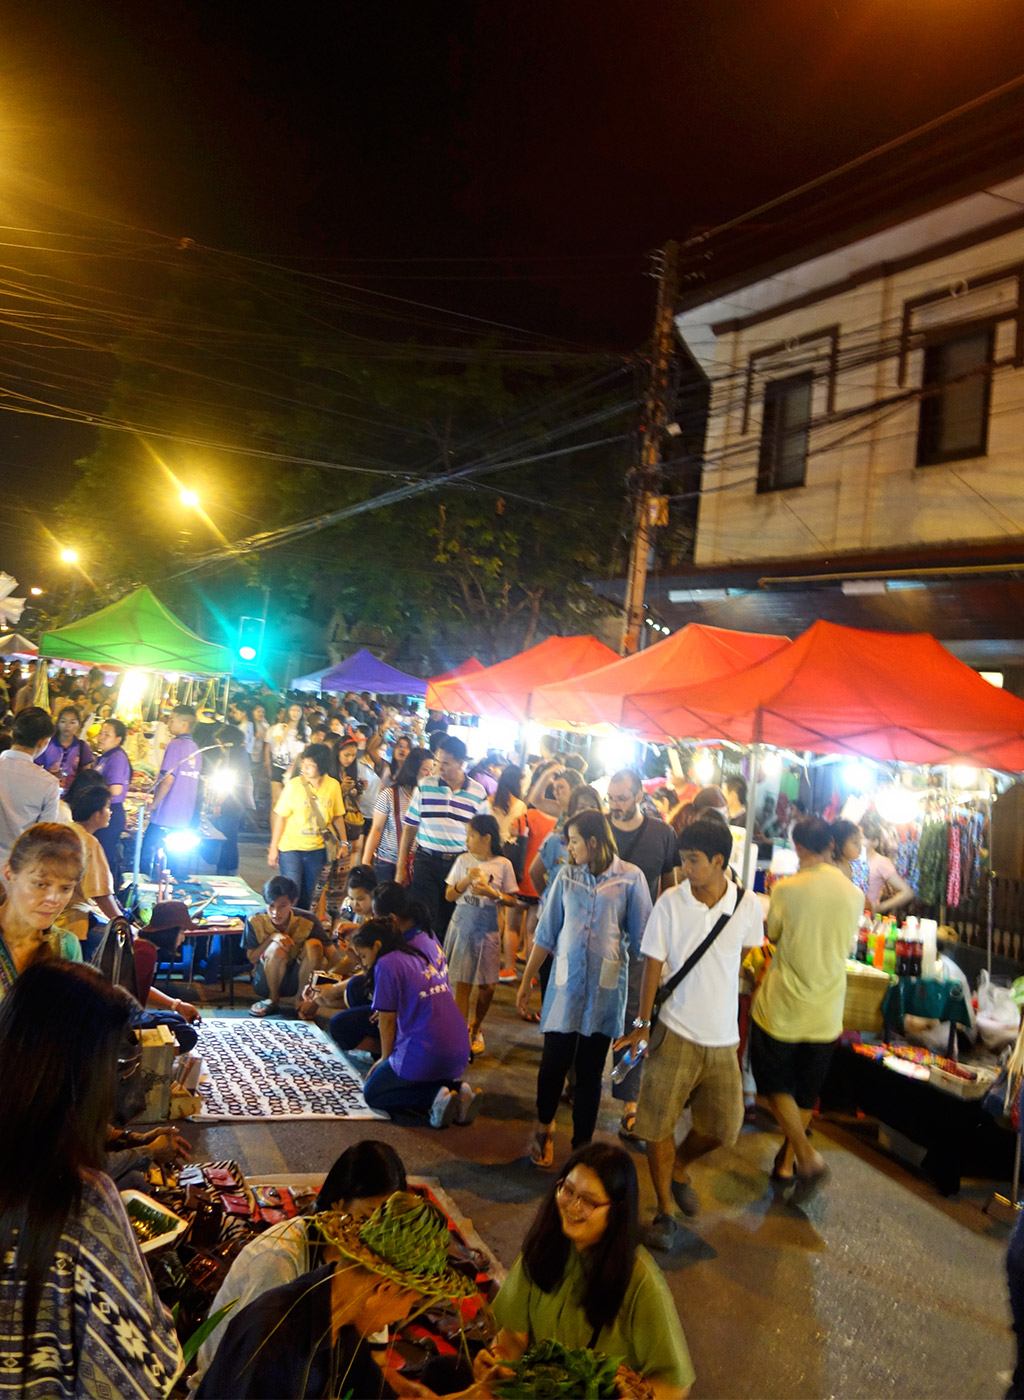 chiang-mai-thailand-sunday-night-market